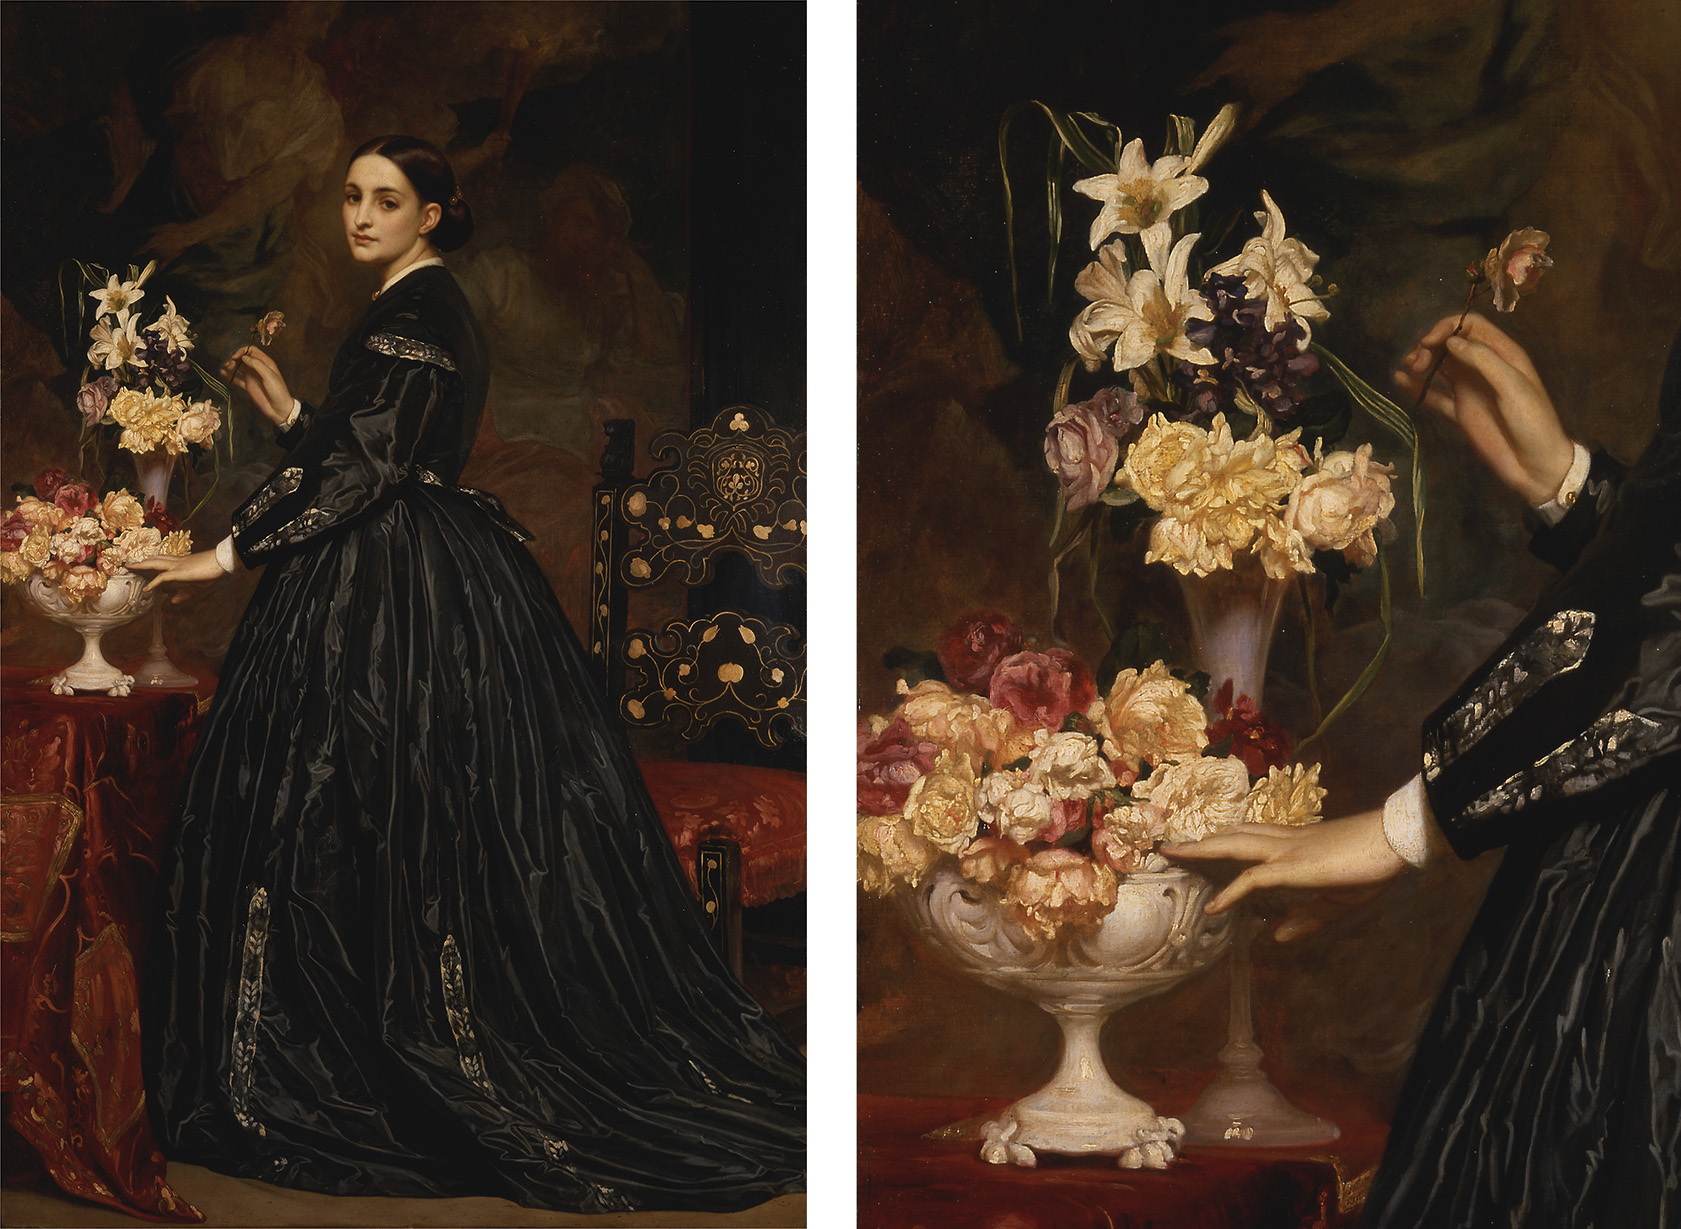 (Left) Frederic Leighton, Mrs. James Guthrie, 1865, oil on canvas, Yale Center for British Art, Paul Mellon Collection; (Right) Frederic Leighton, Mrs. James Guthrie (detail), 1865, oil on canvas, Yale Center for British Art, Paul Mellon Collection